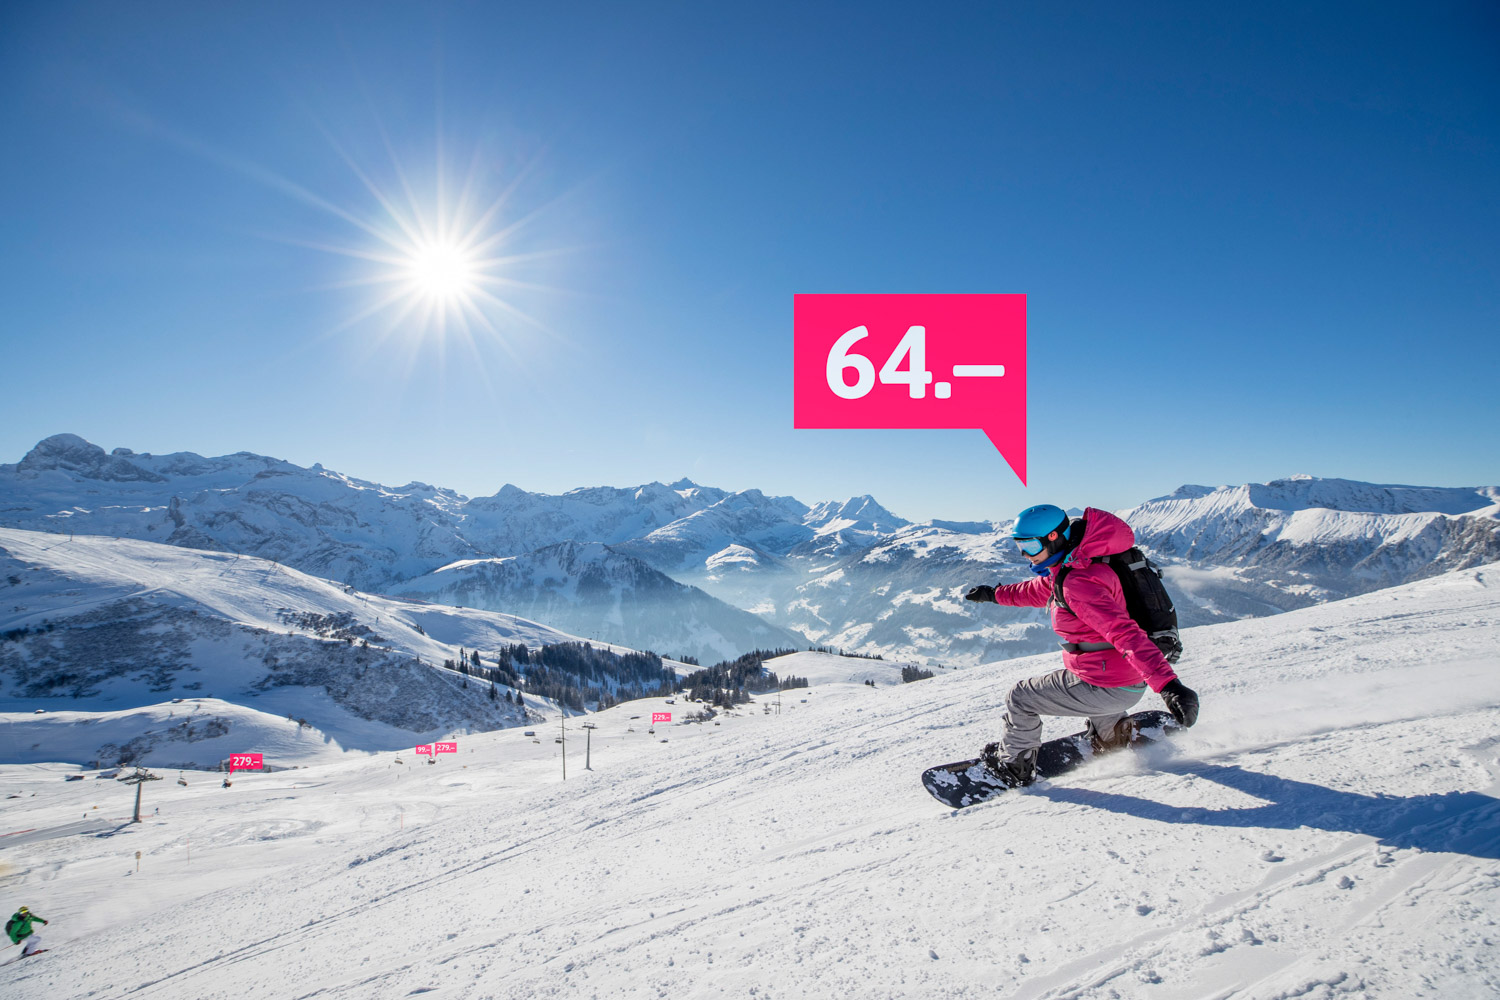 Snowboard-Solo Visual lenk-simmental.ch Winterspecial 17/18 Social-Media